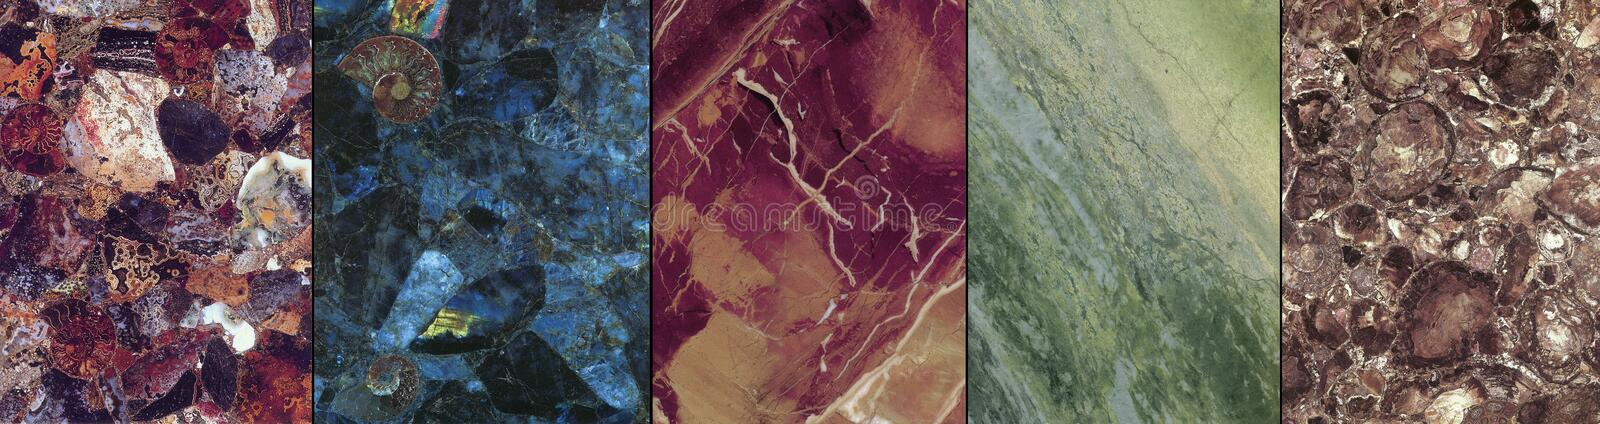 Special marbel an granite stone plates. Creation of nature stone in marble and granite plates stock photography